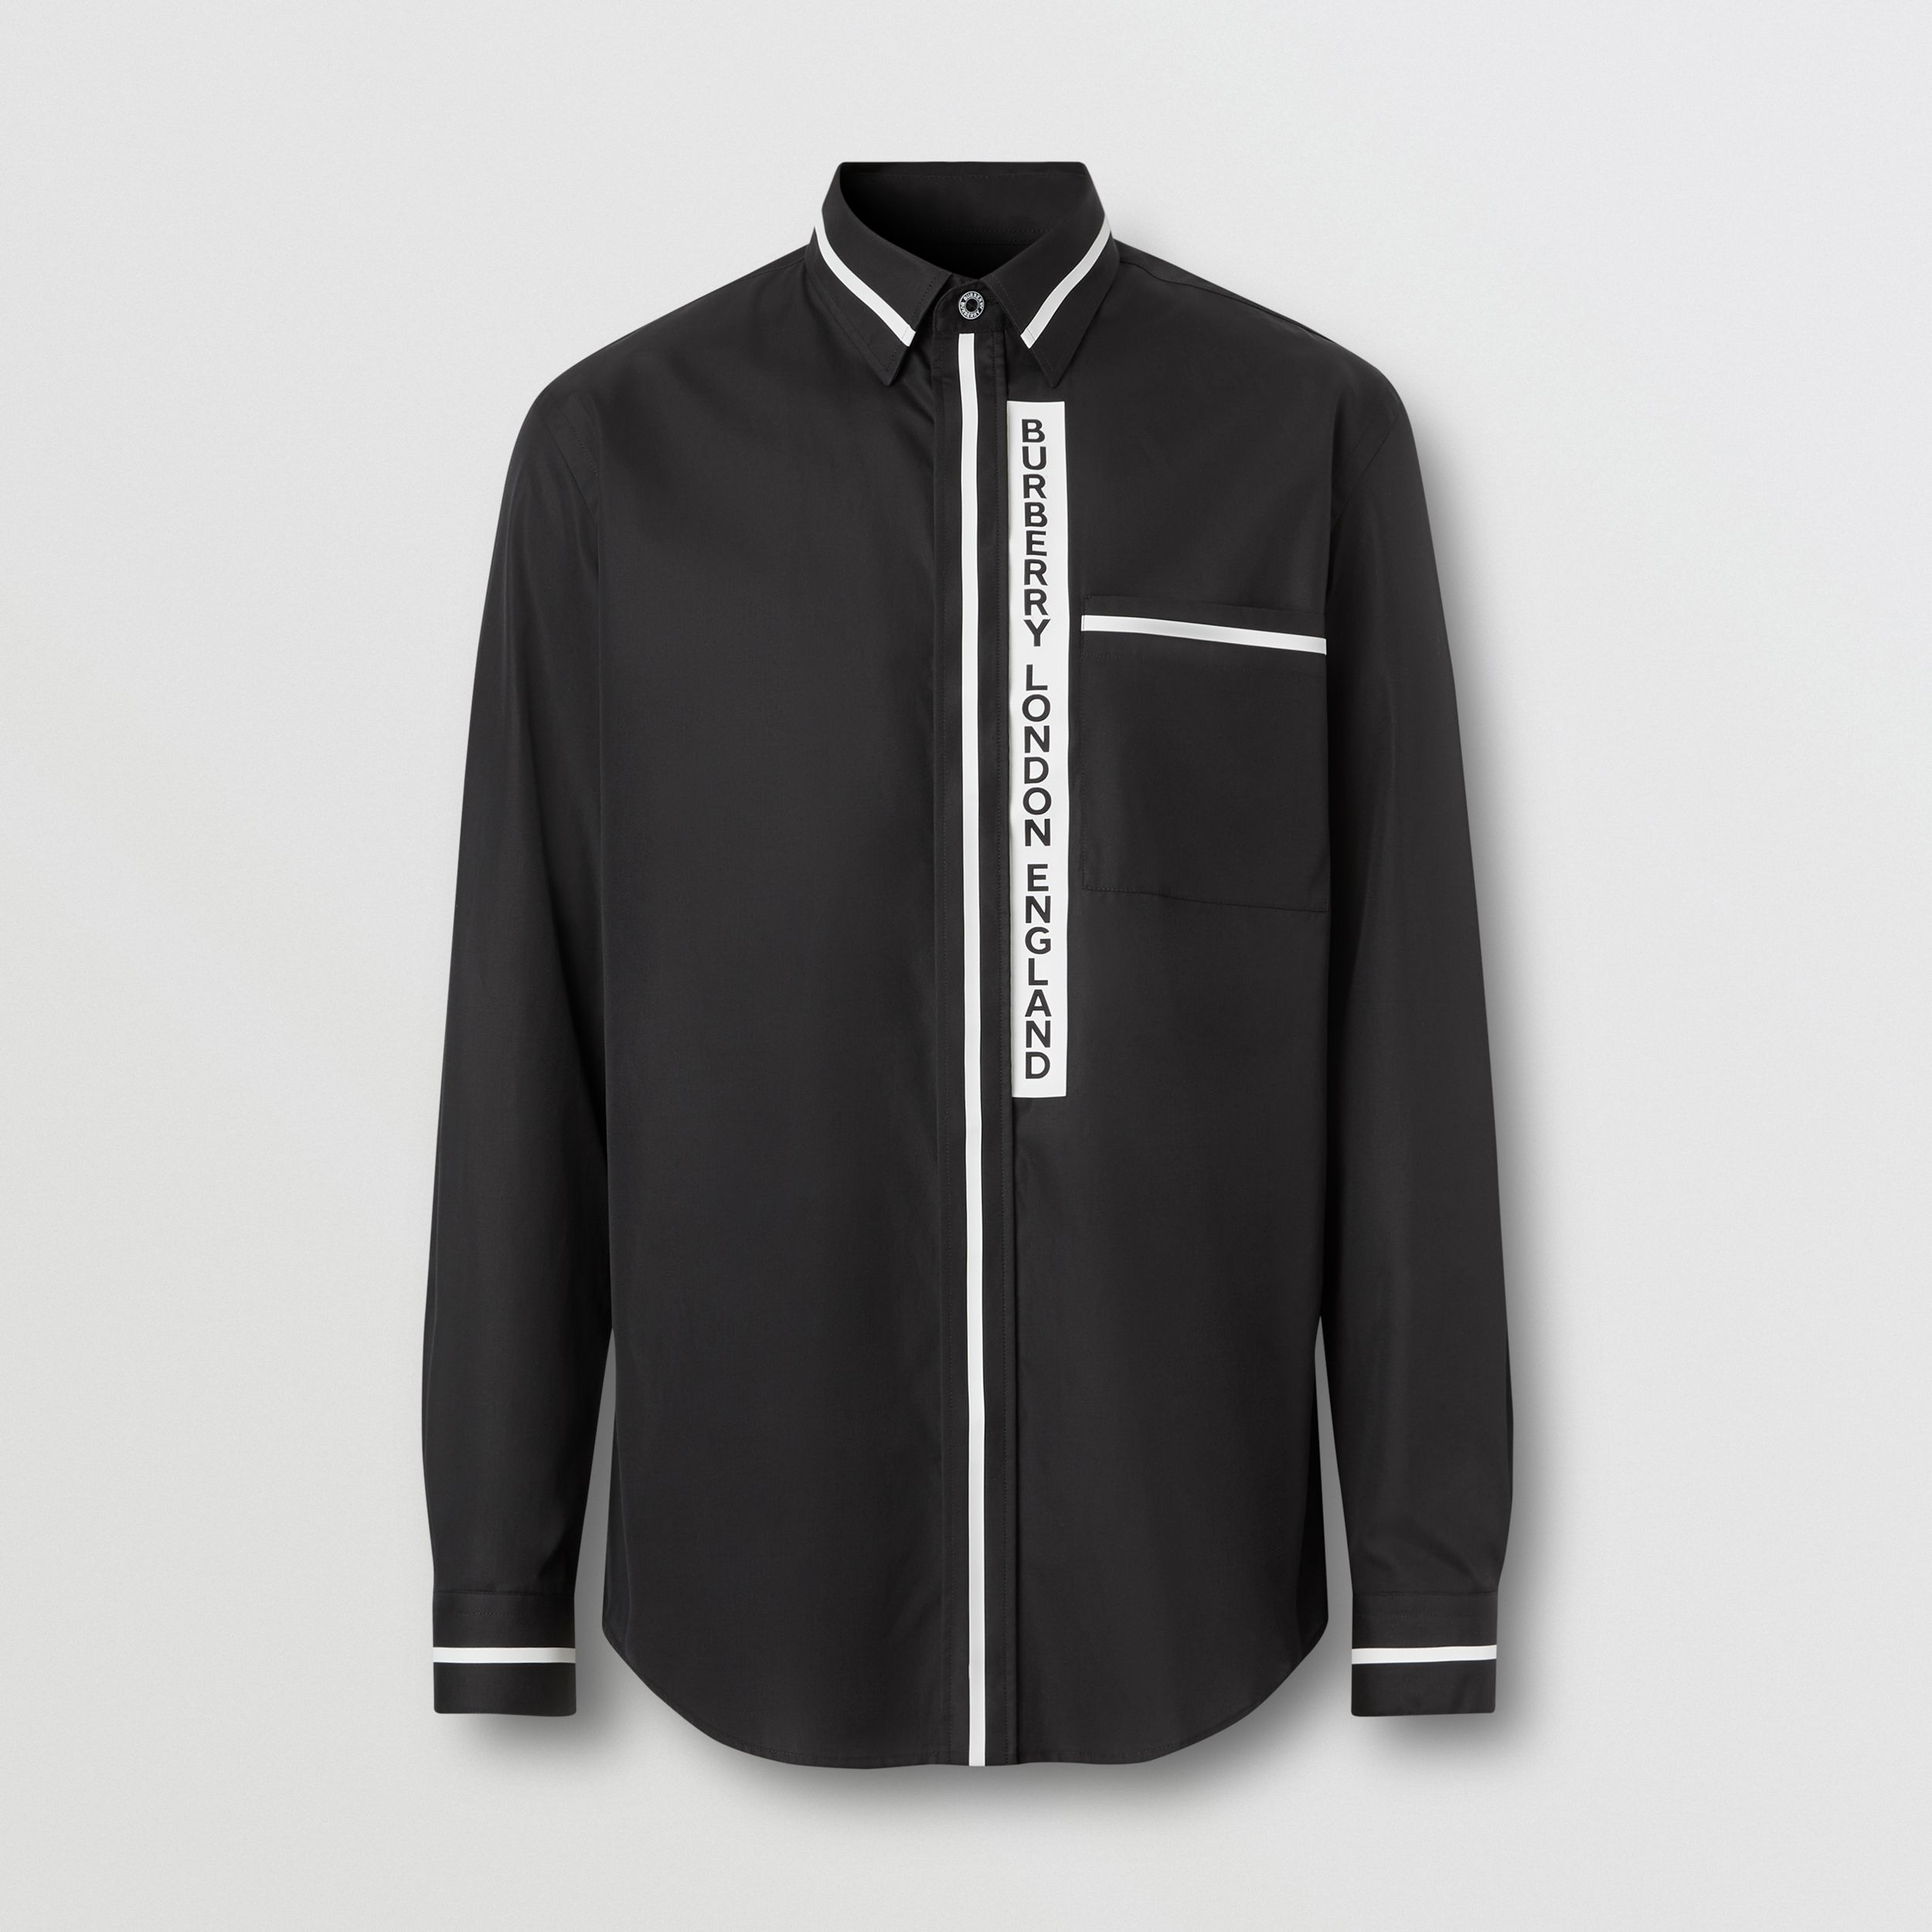 Logo Appliqué Cotton Poplin Shirt in Black - Men | Burberry - 4